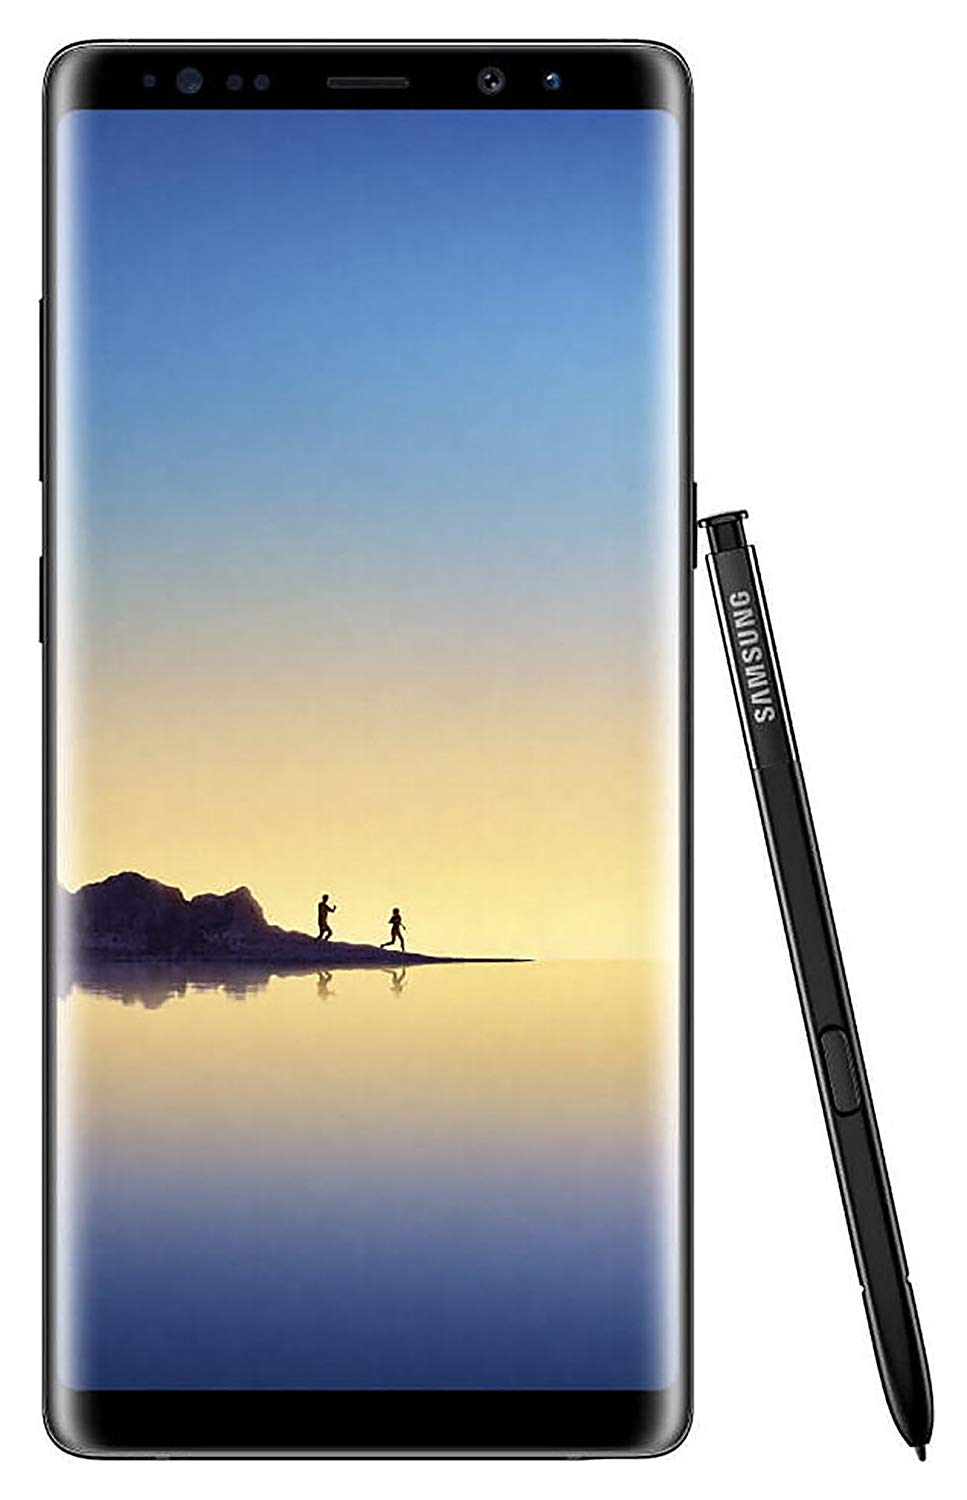 Samsung Galaxy Note 8 - The Best Phones for Mobile Photography - FilterGrade